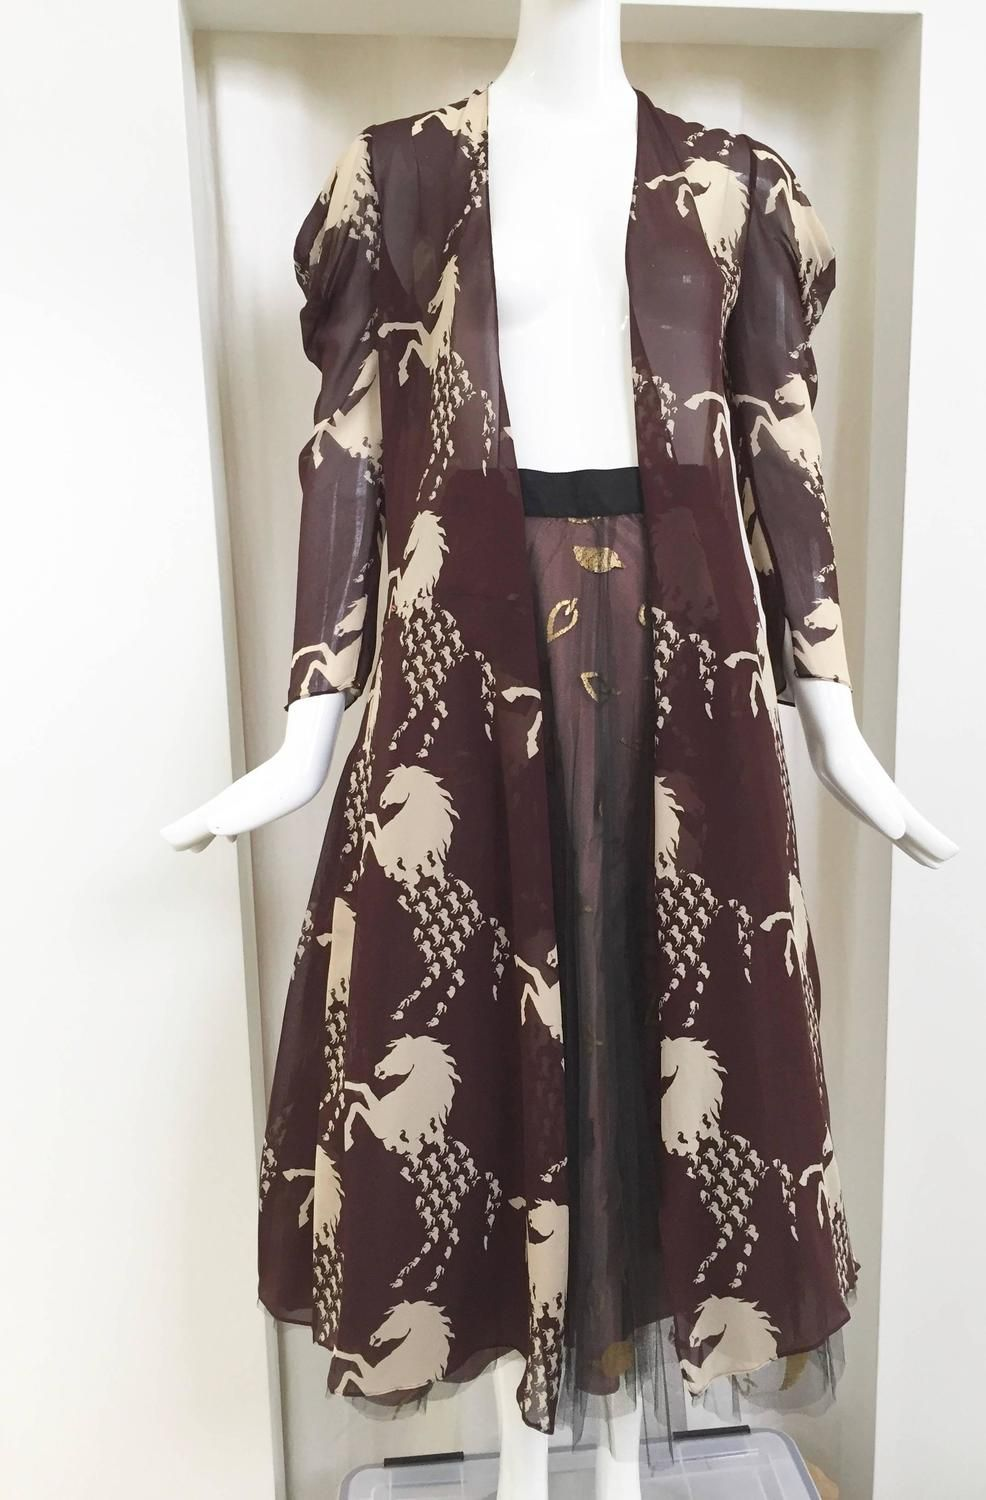 e1a9efaae0 2001 CHLOE horse print silk wrap dress in 2019 | Fashion & Style ...